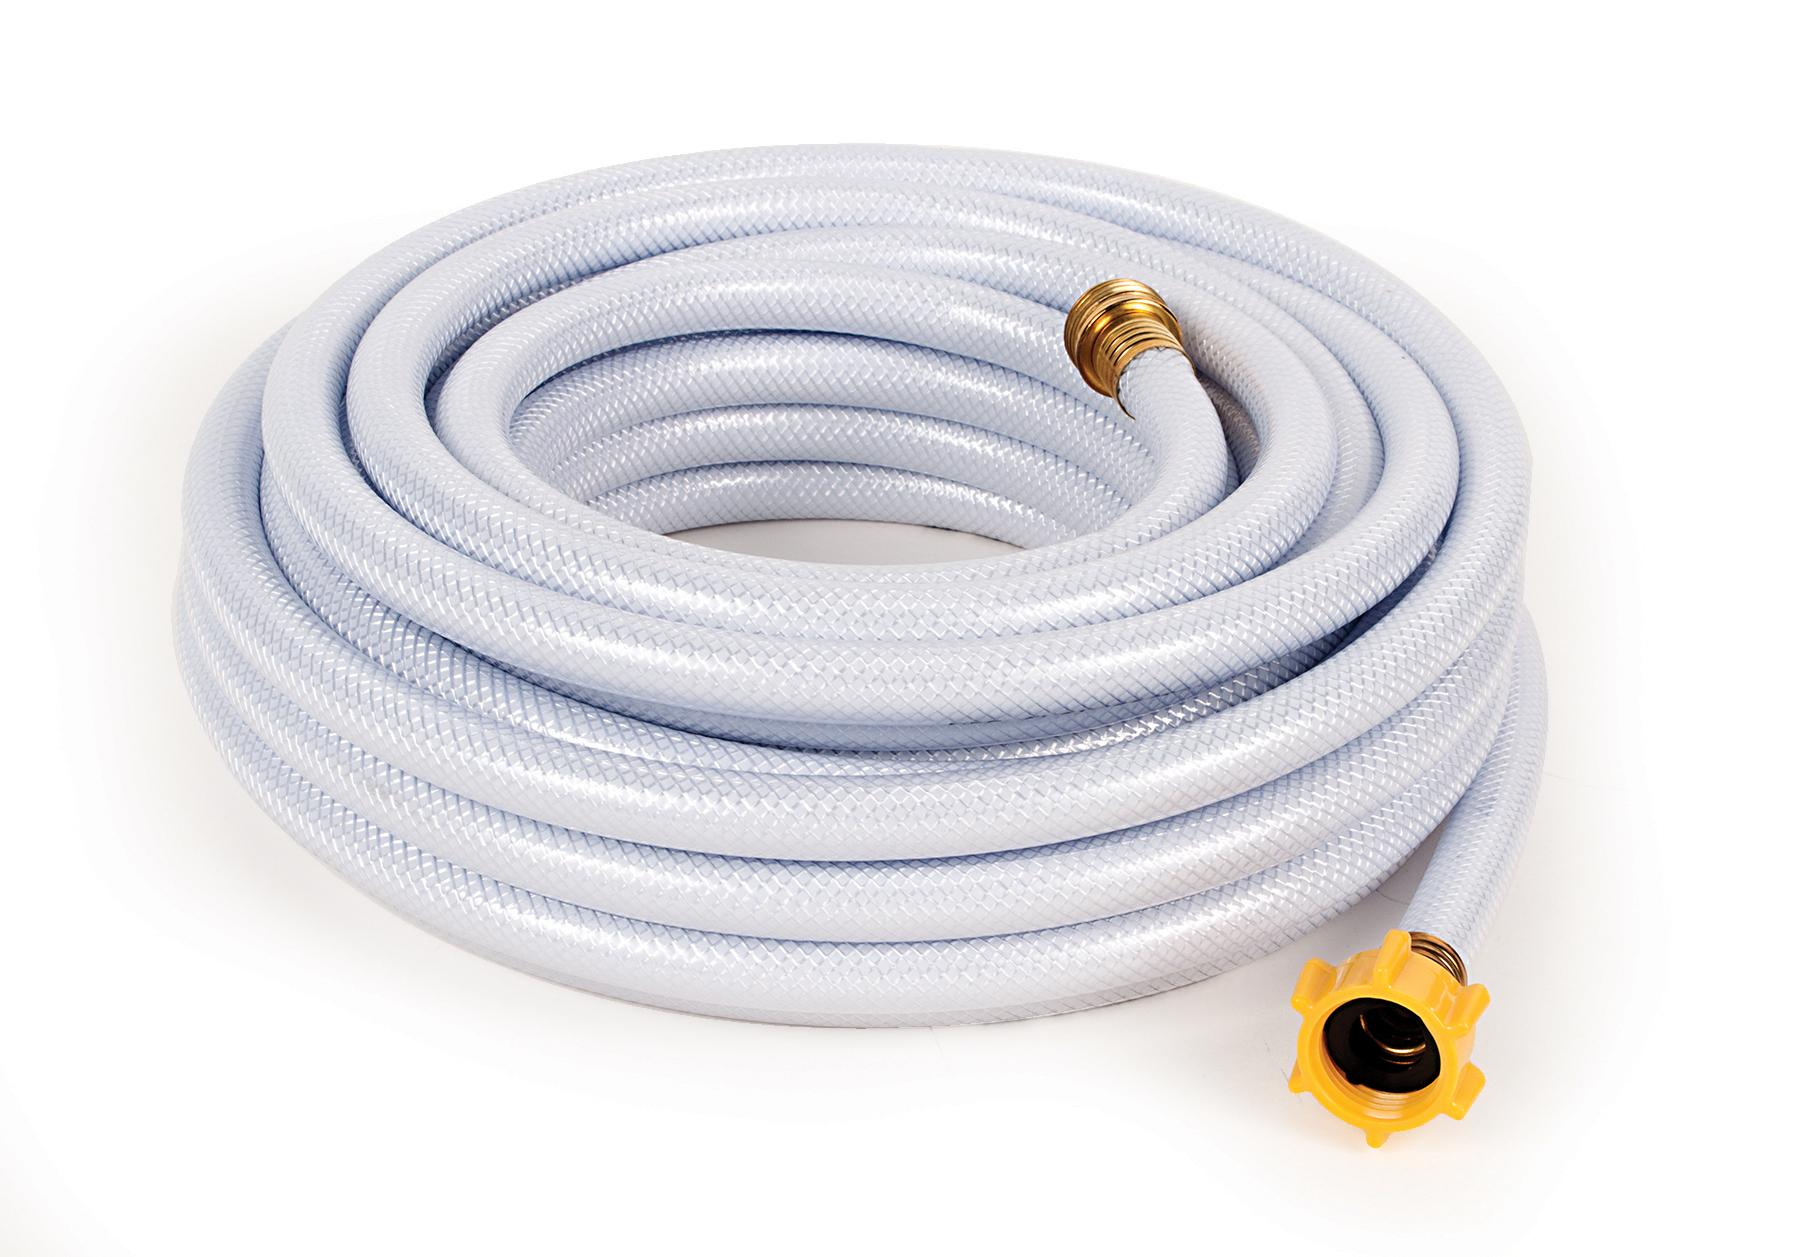 View larger  sc 1 st  Amazon.com & Amazon.com: Camco 50ft TastePURE Drinking Water Hose - Lead BPA Free ...